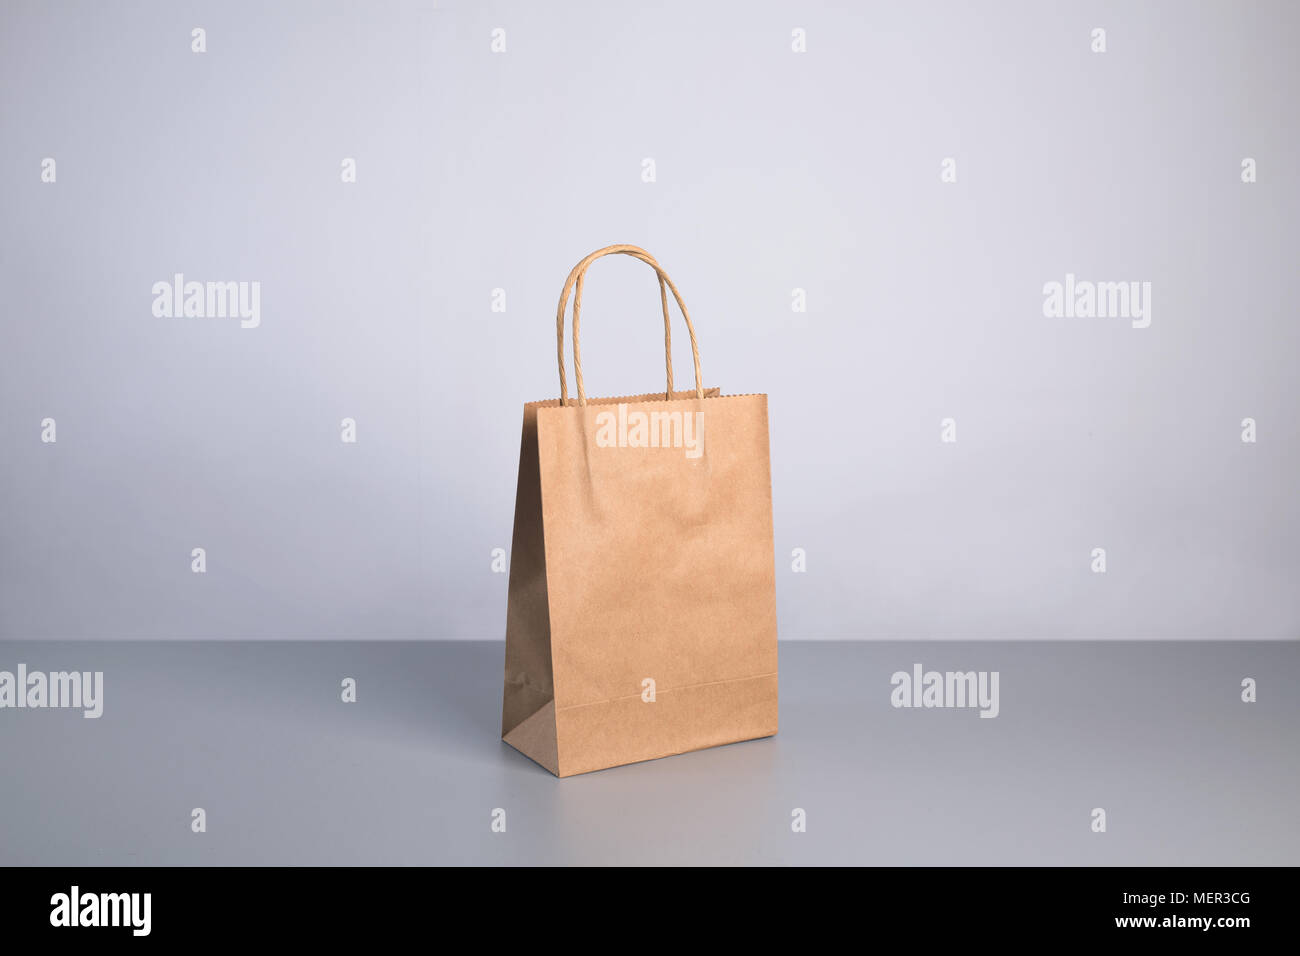 new recyclable kraft paper bag - Stock Image